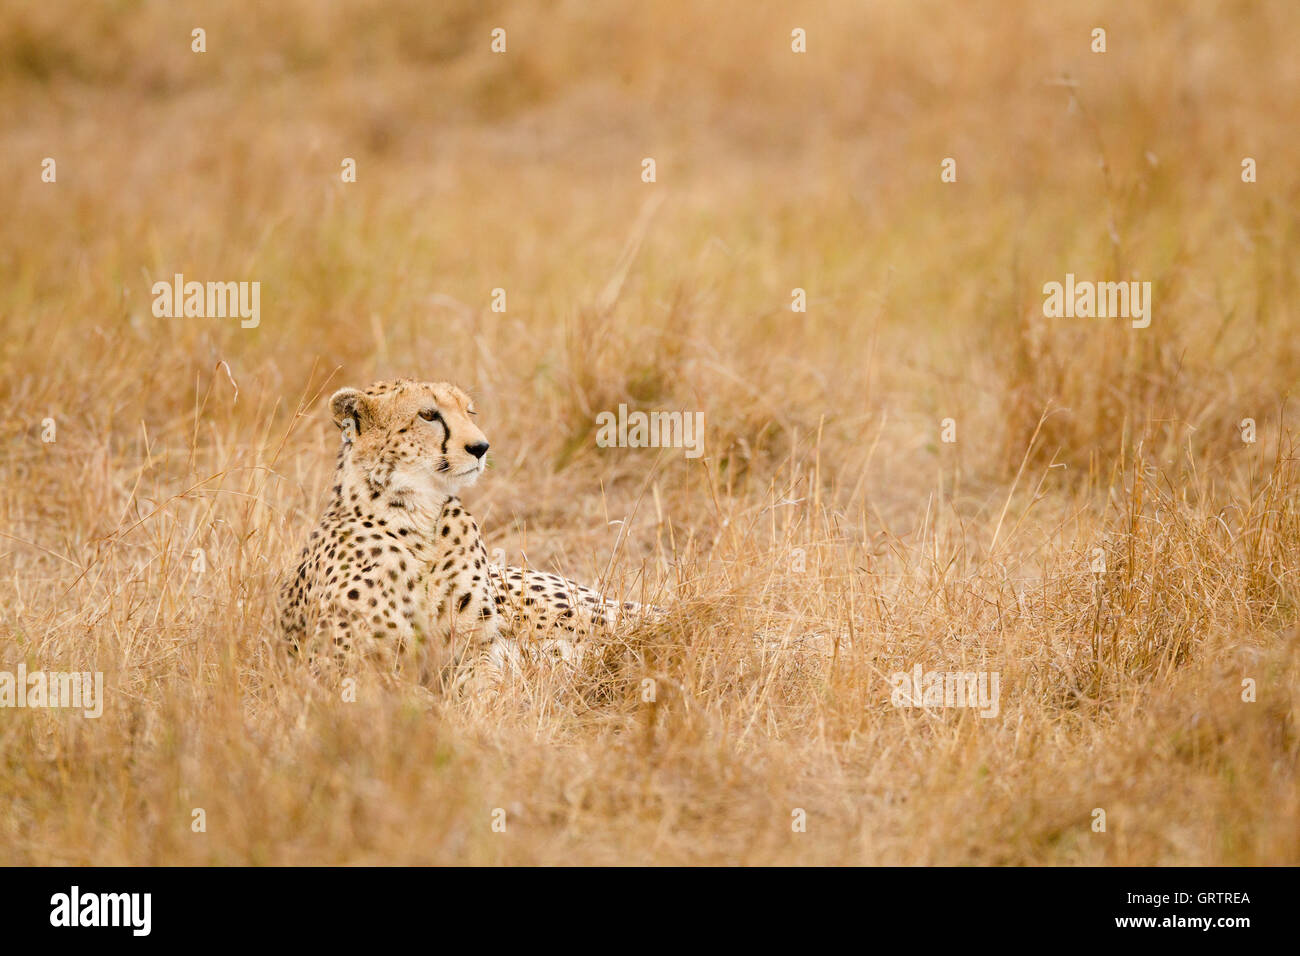 cheetah in the grass - Stock Image